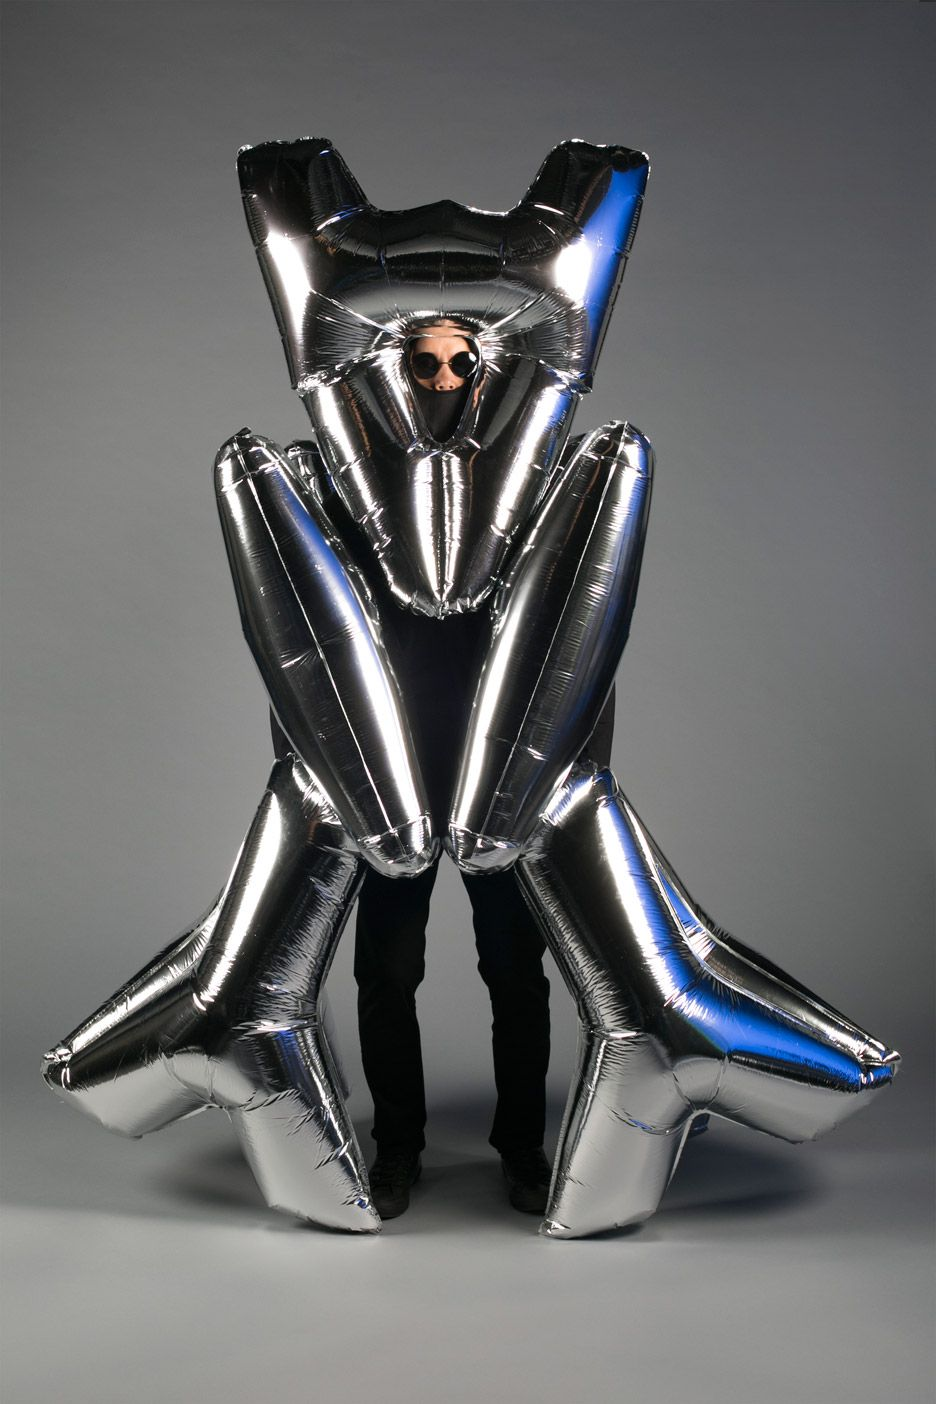 American designer Ken Tanabe has used a range of unusual materials, including balloons, to form alternative Halloween costumes.